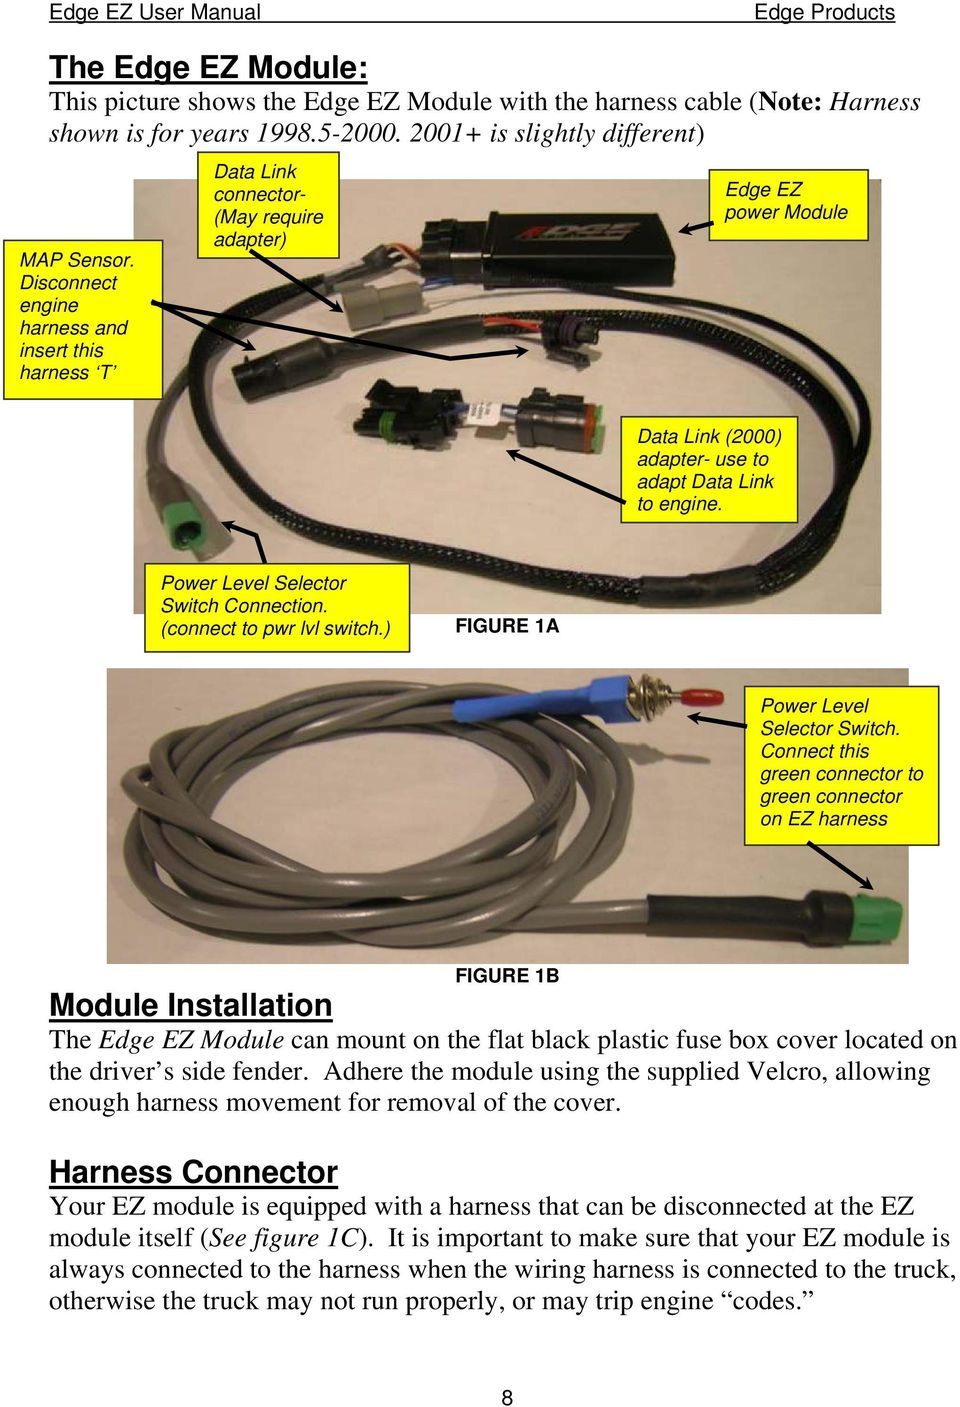 Edge Tuner Wire Harness Wiring Library For Battery S 36 Volt Diagrams Dodge Cummins 5 9l 24 Valve Products Ez Module Installation Ezgo Diagram